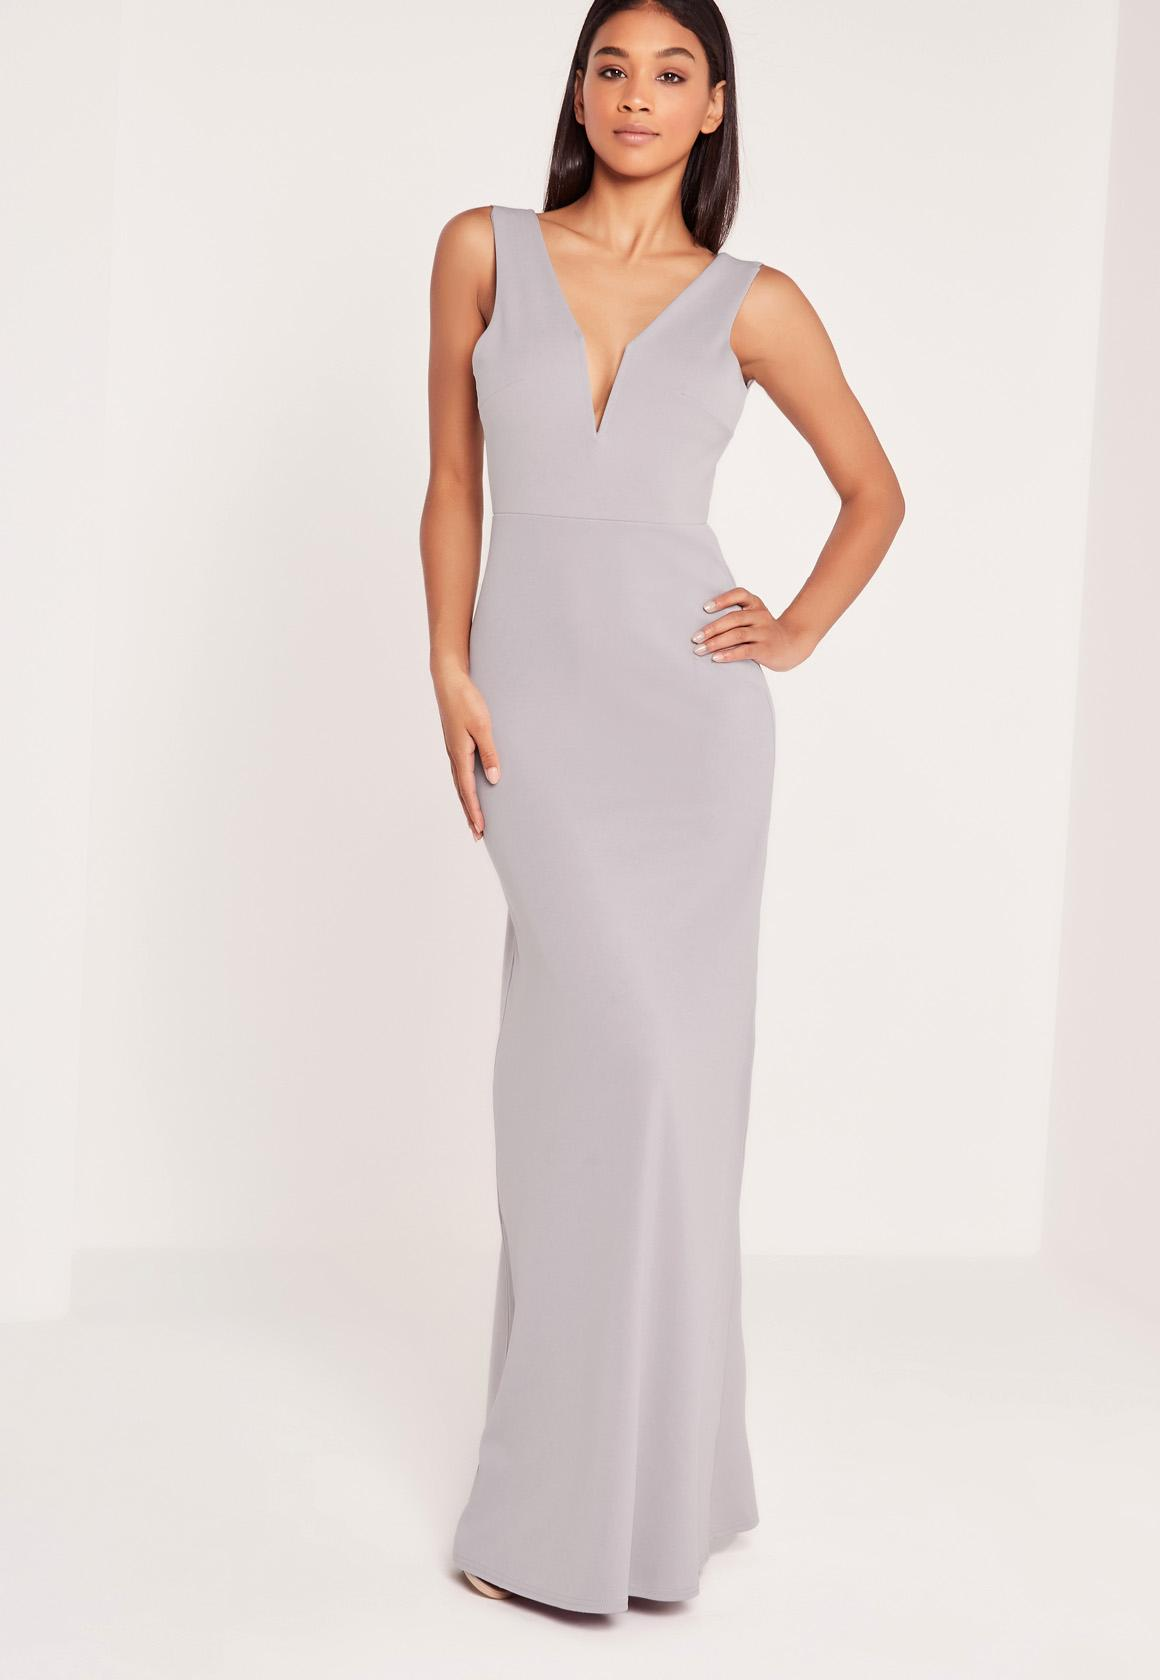 Wedding guest dresses dresses for weddings missguided ombrellifo Choice Image